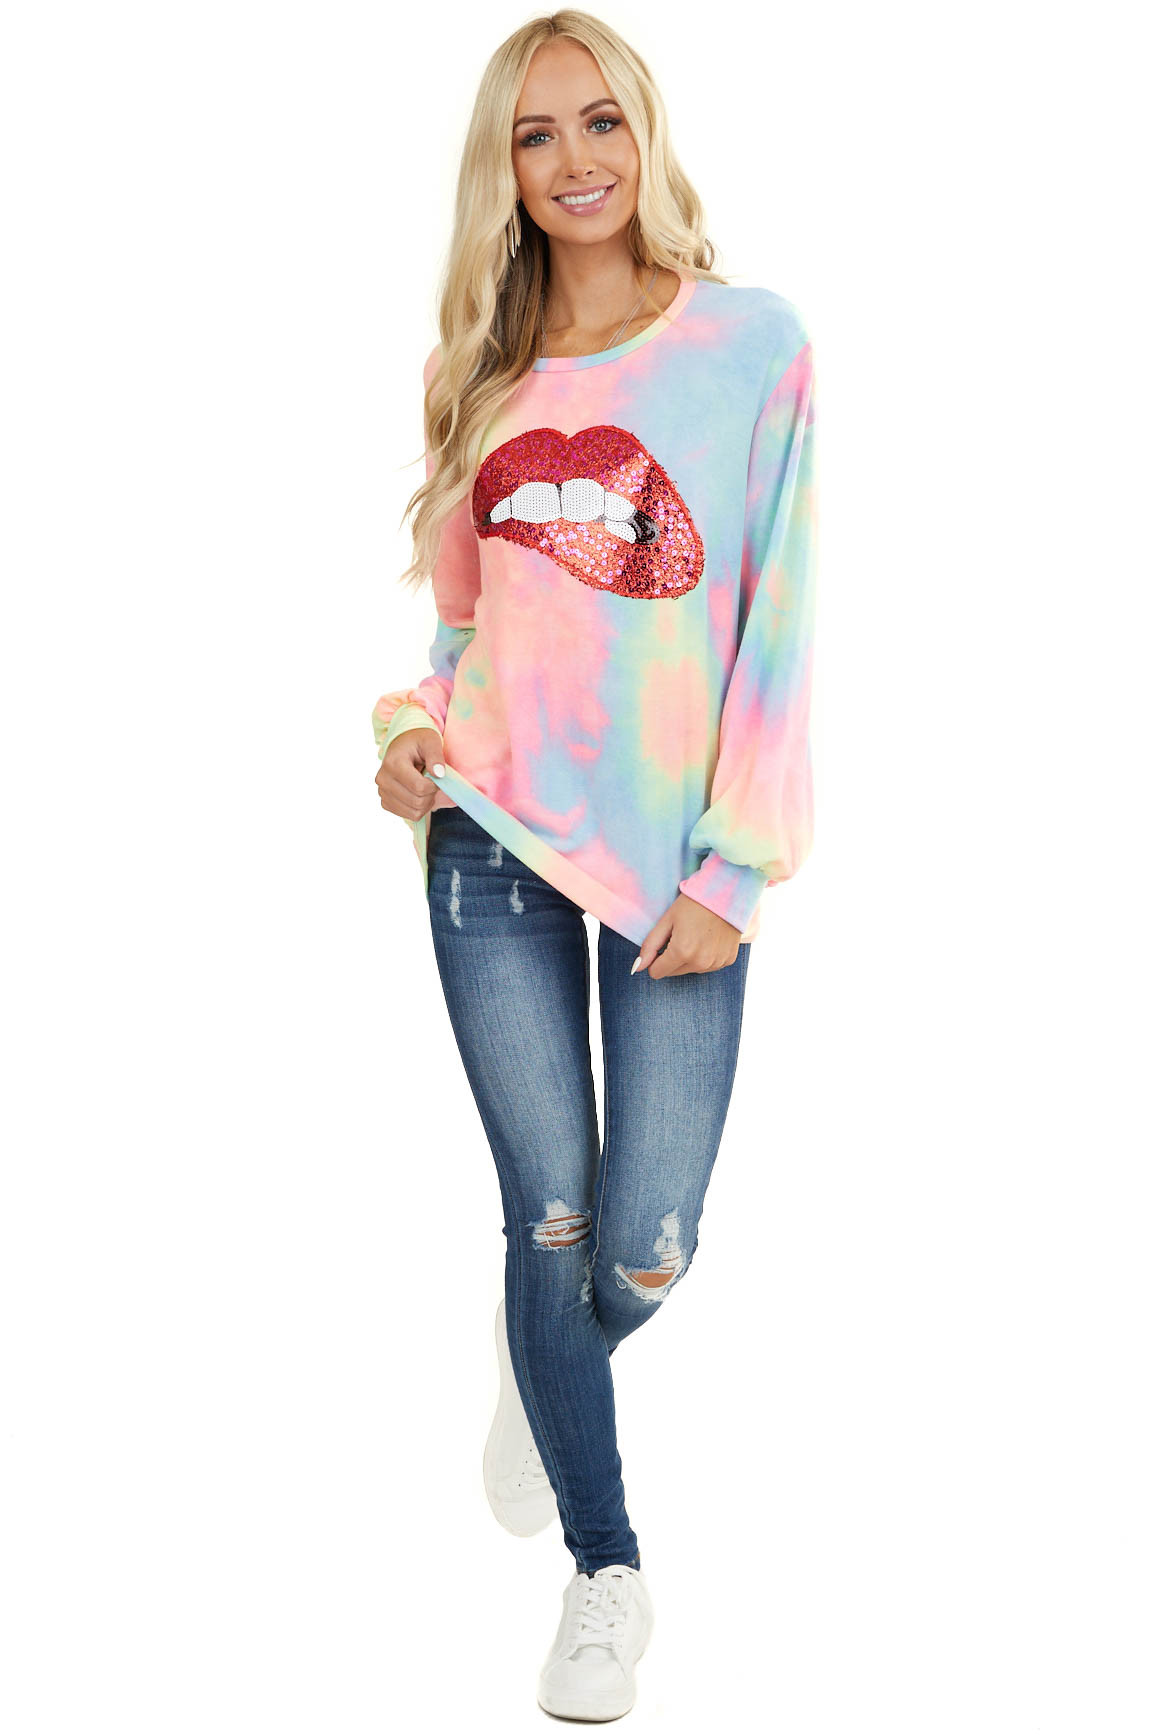 Neon Tie Dye Long Sleeve Top with Red Sequin Lip Graphic